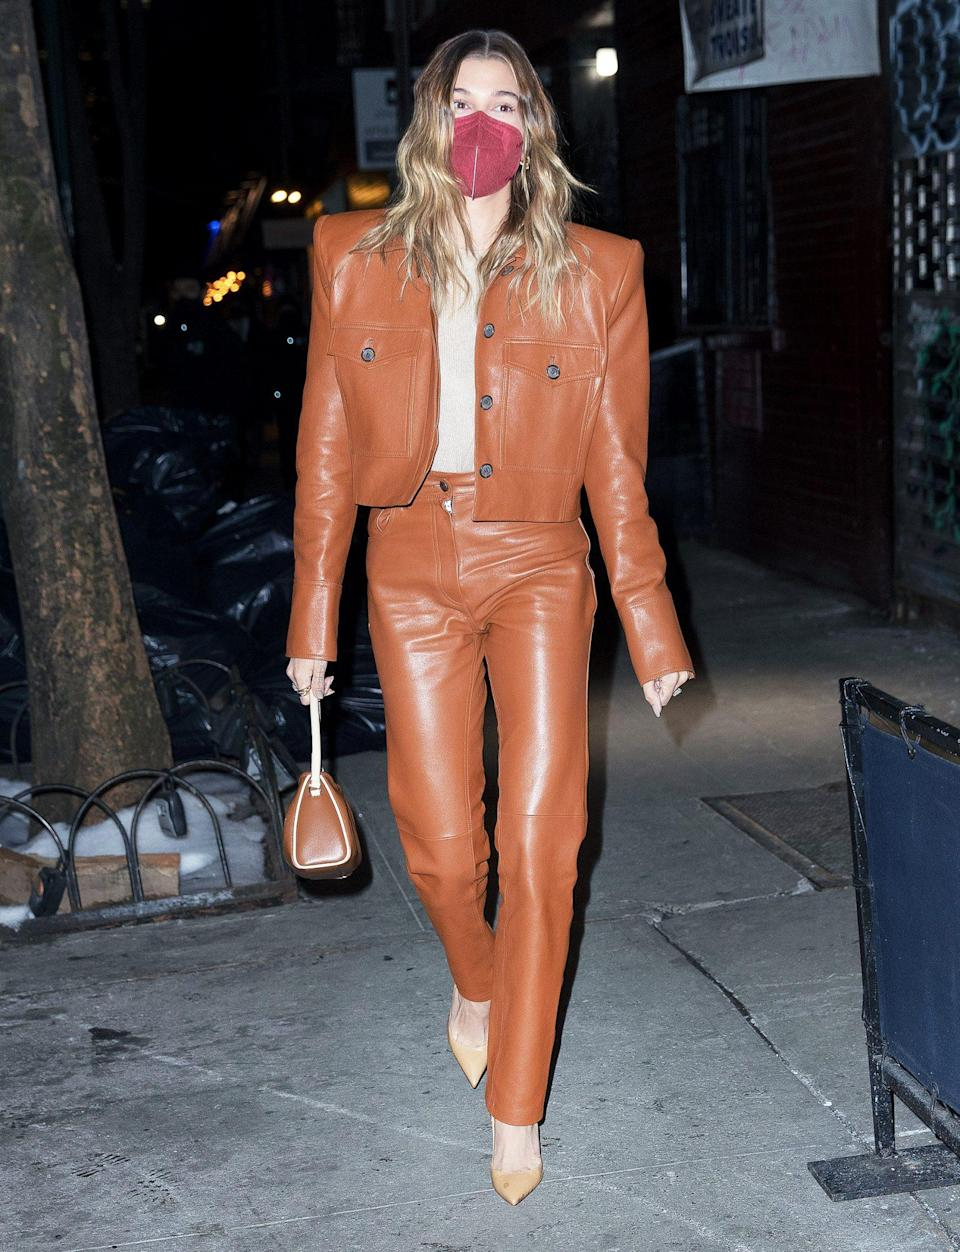 <p>Hailey Bieber looks sharp in a two-piece leather suit as she heads to dinner with singer Justine Skye at Carbone in N.Y.C. on Sunday.</p>